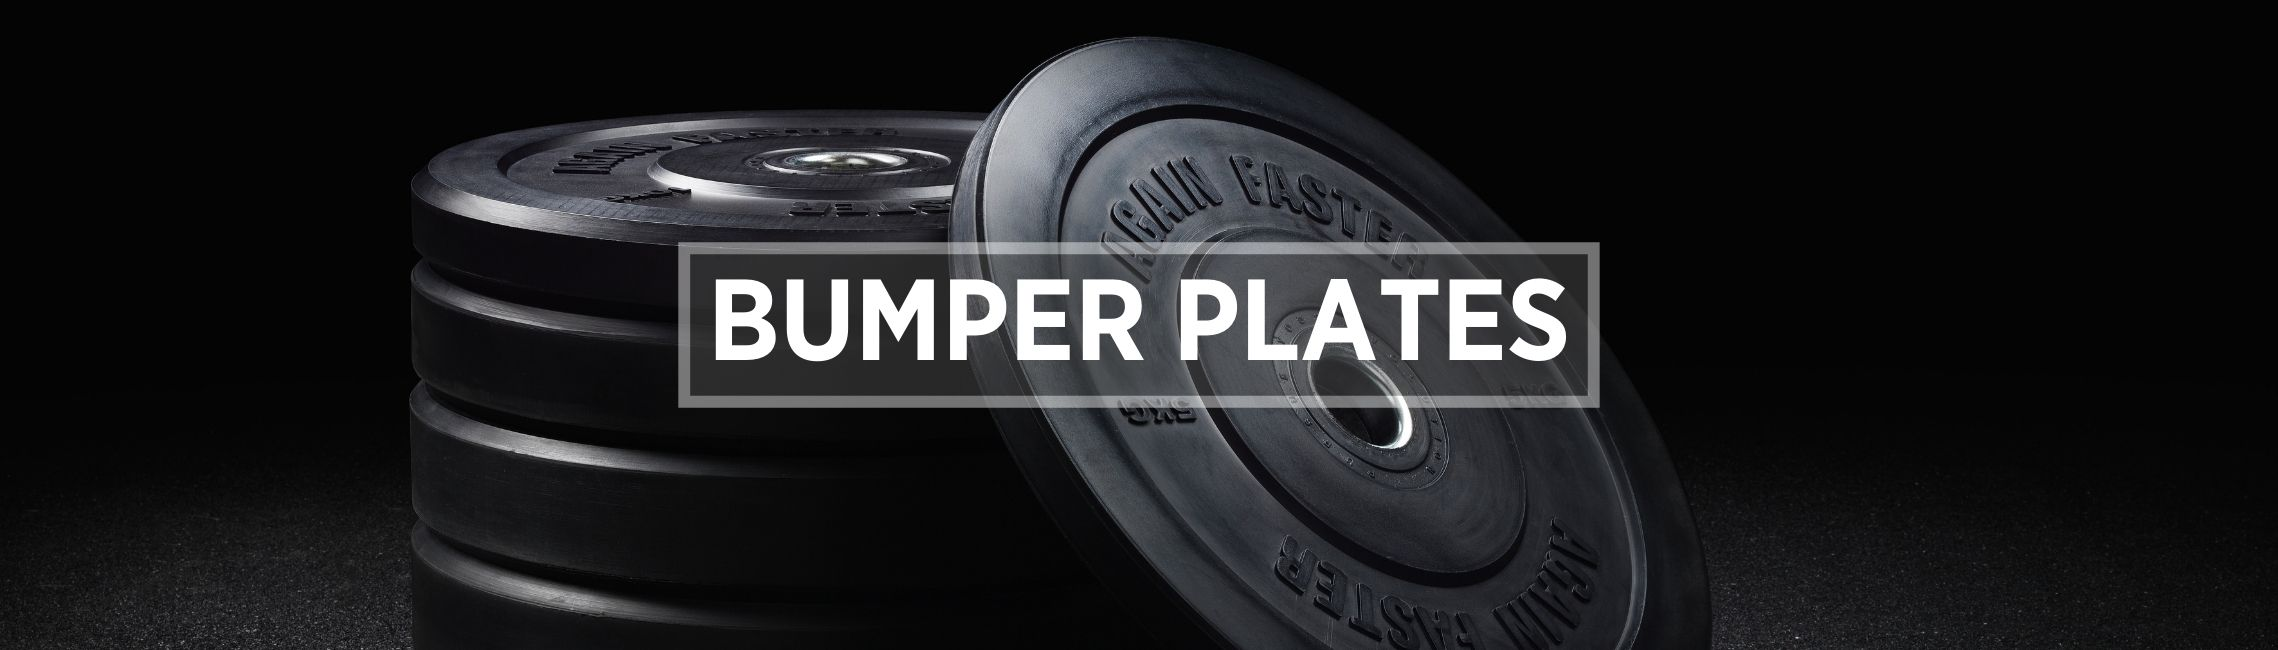 Weightlifting Plates